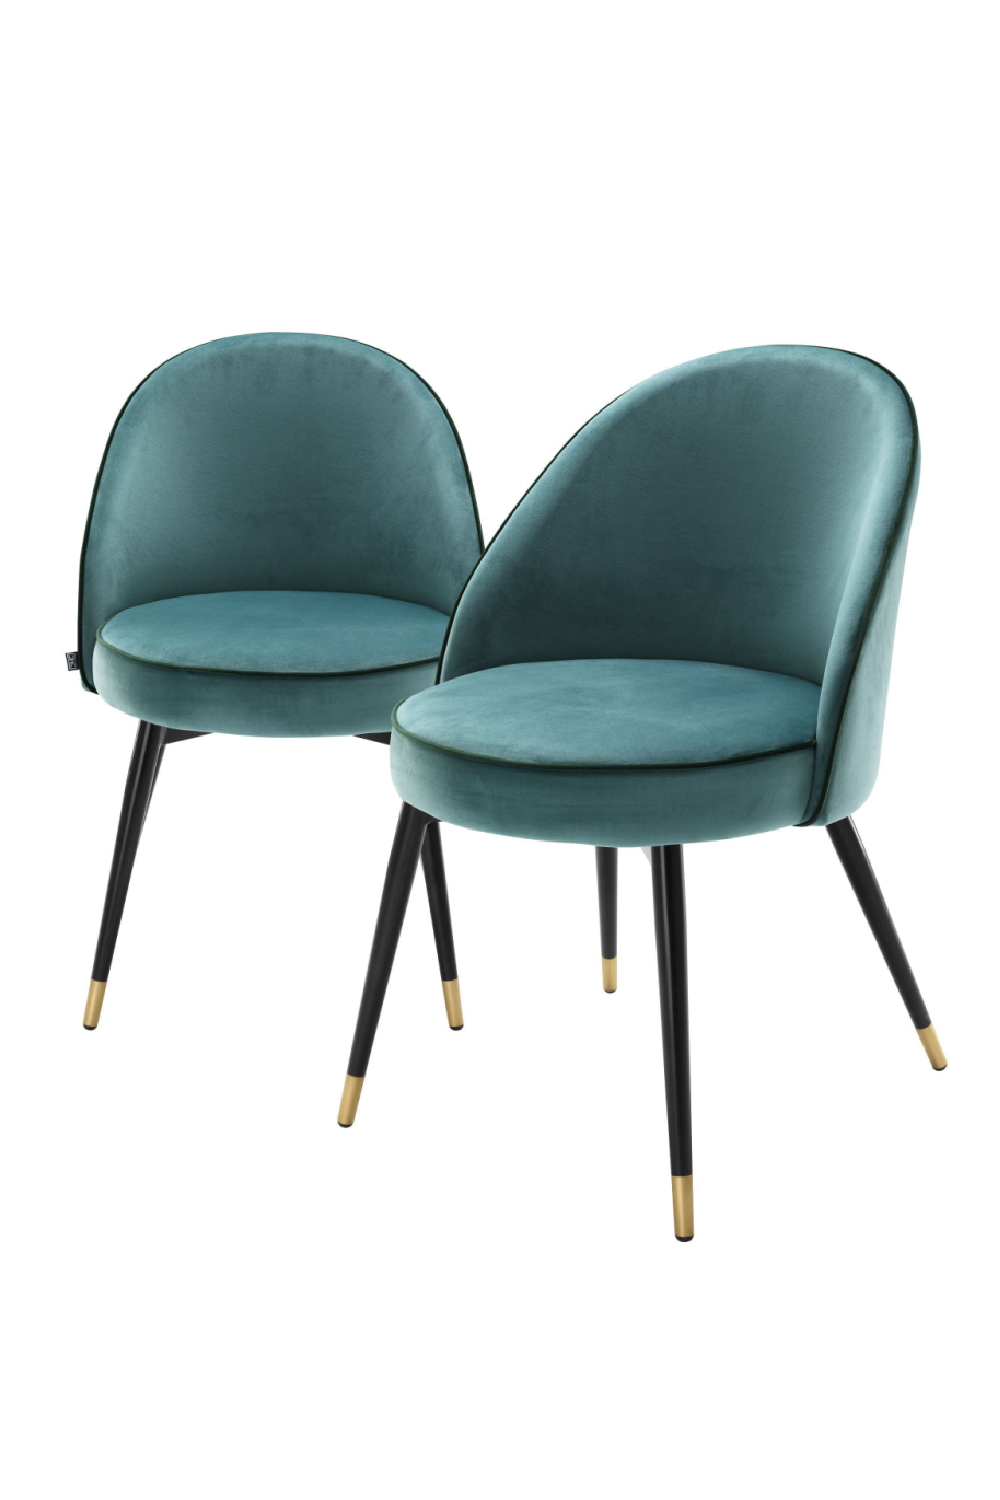 Light Blue Dining Chair Set Of 2 | Eichholtz Cooper